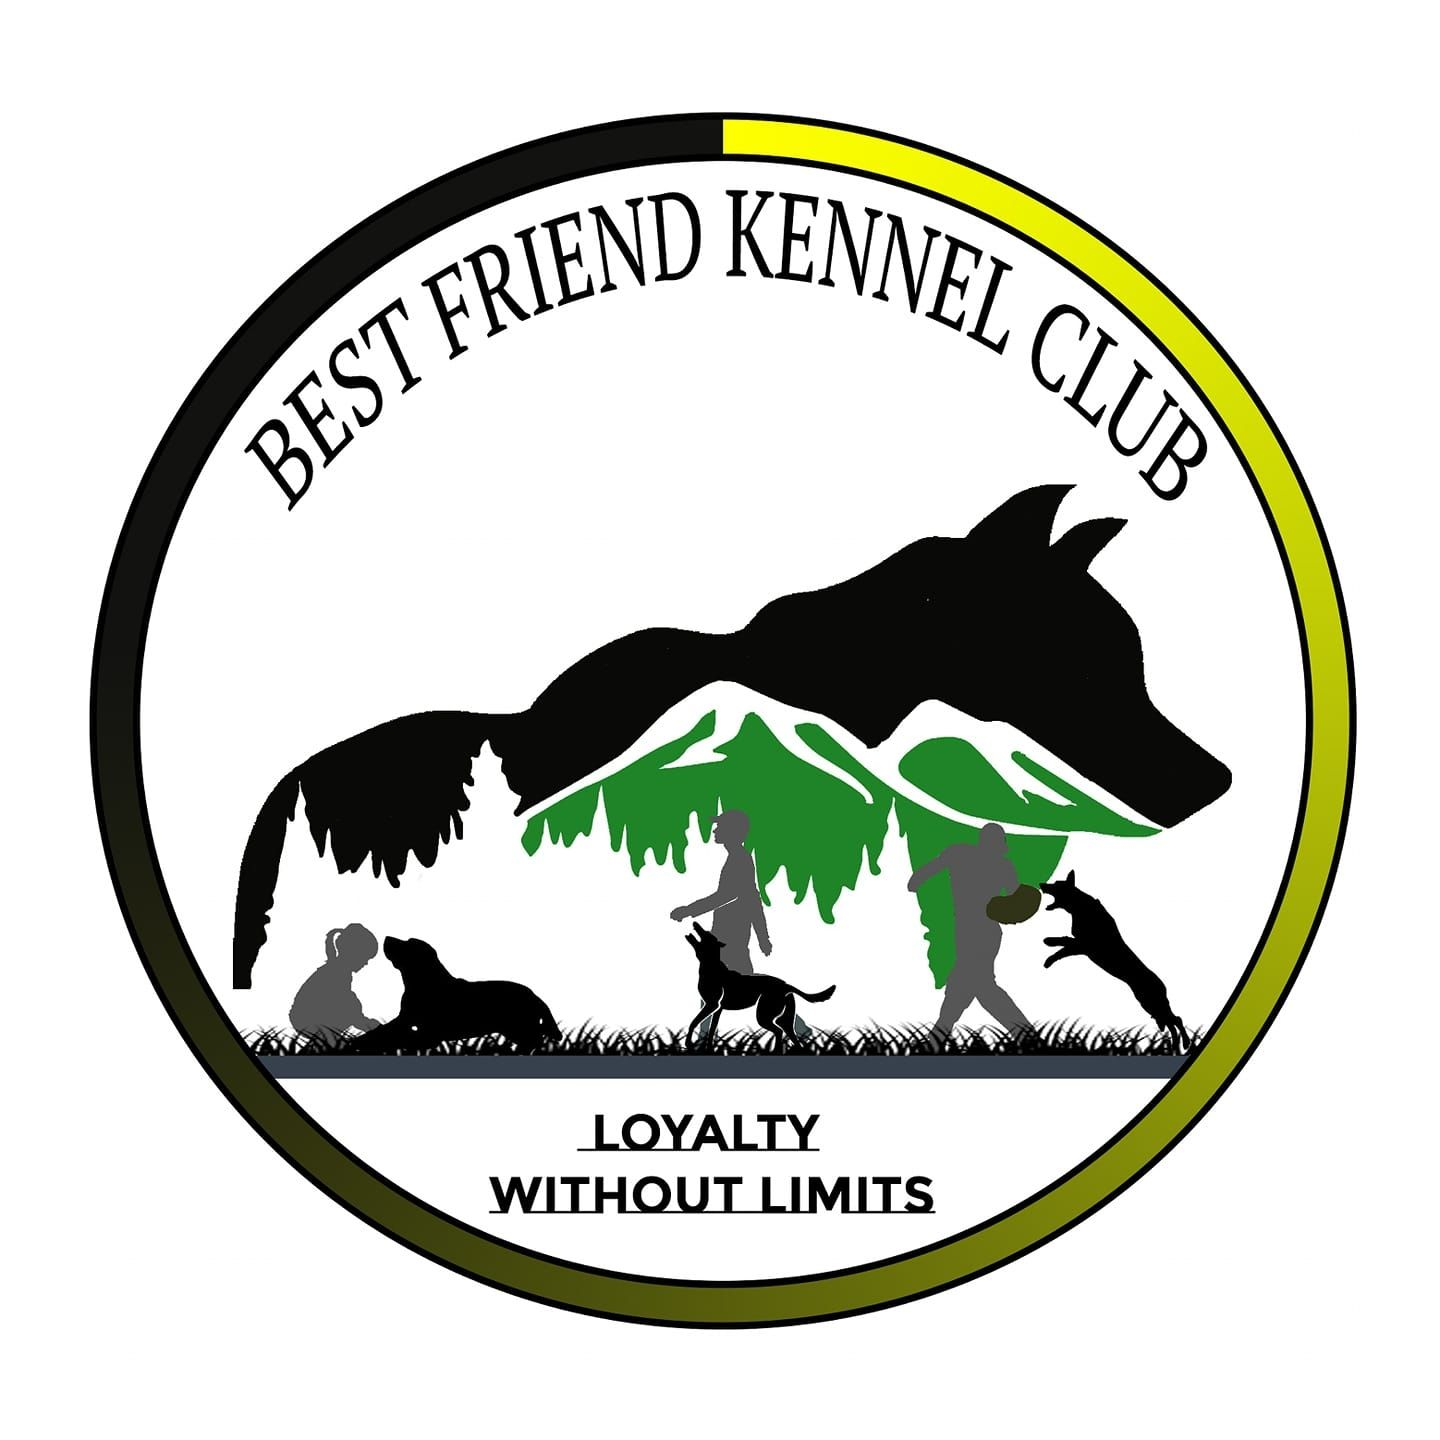 Best Friend Kennel Club